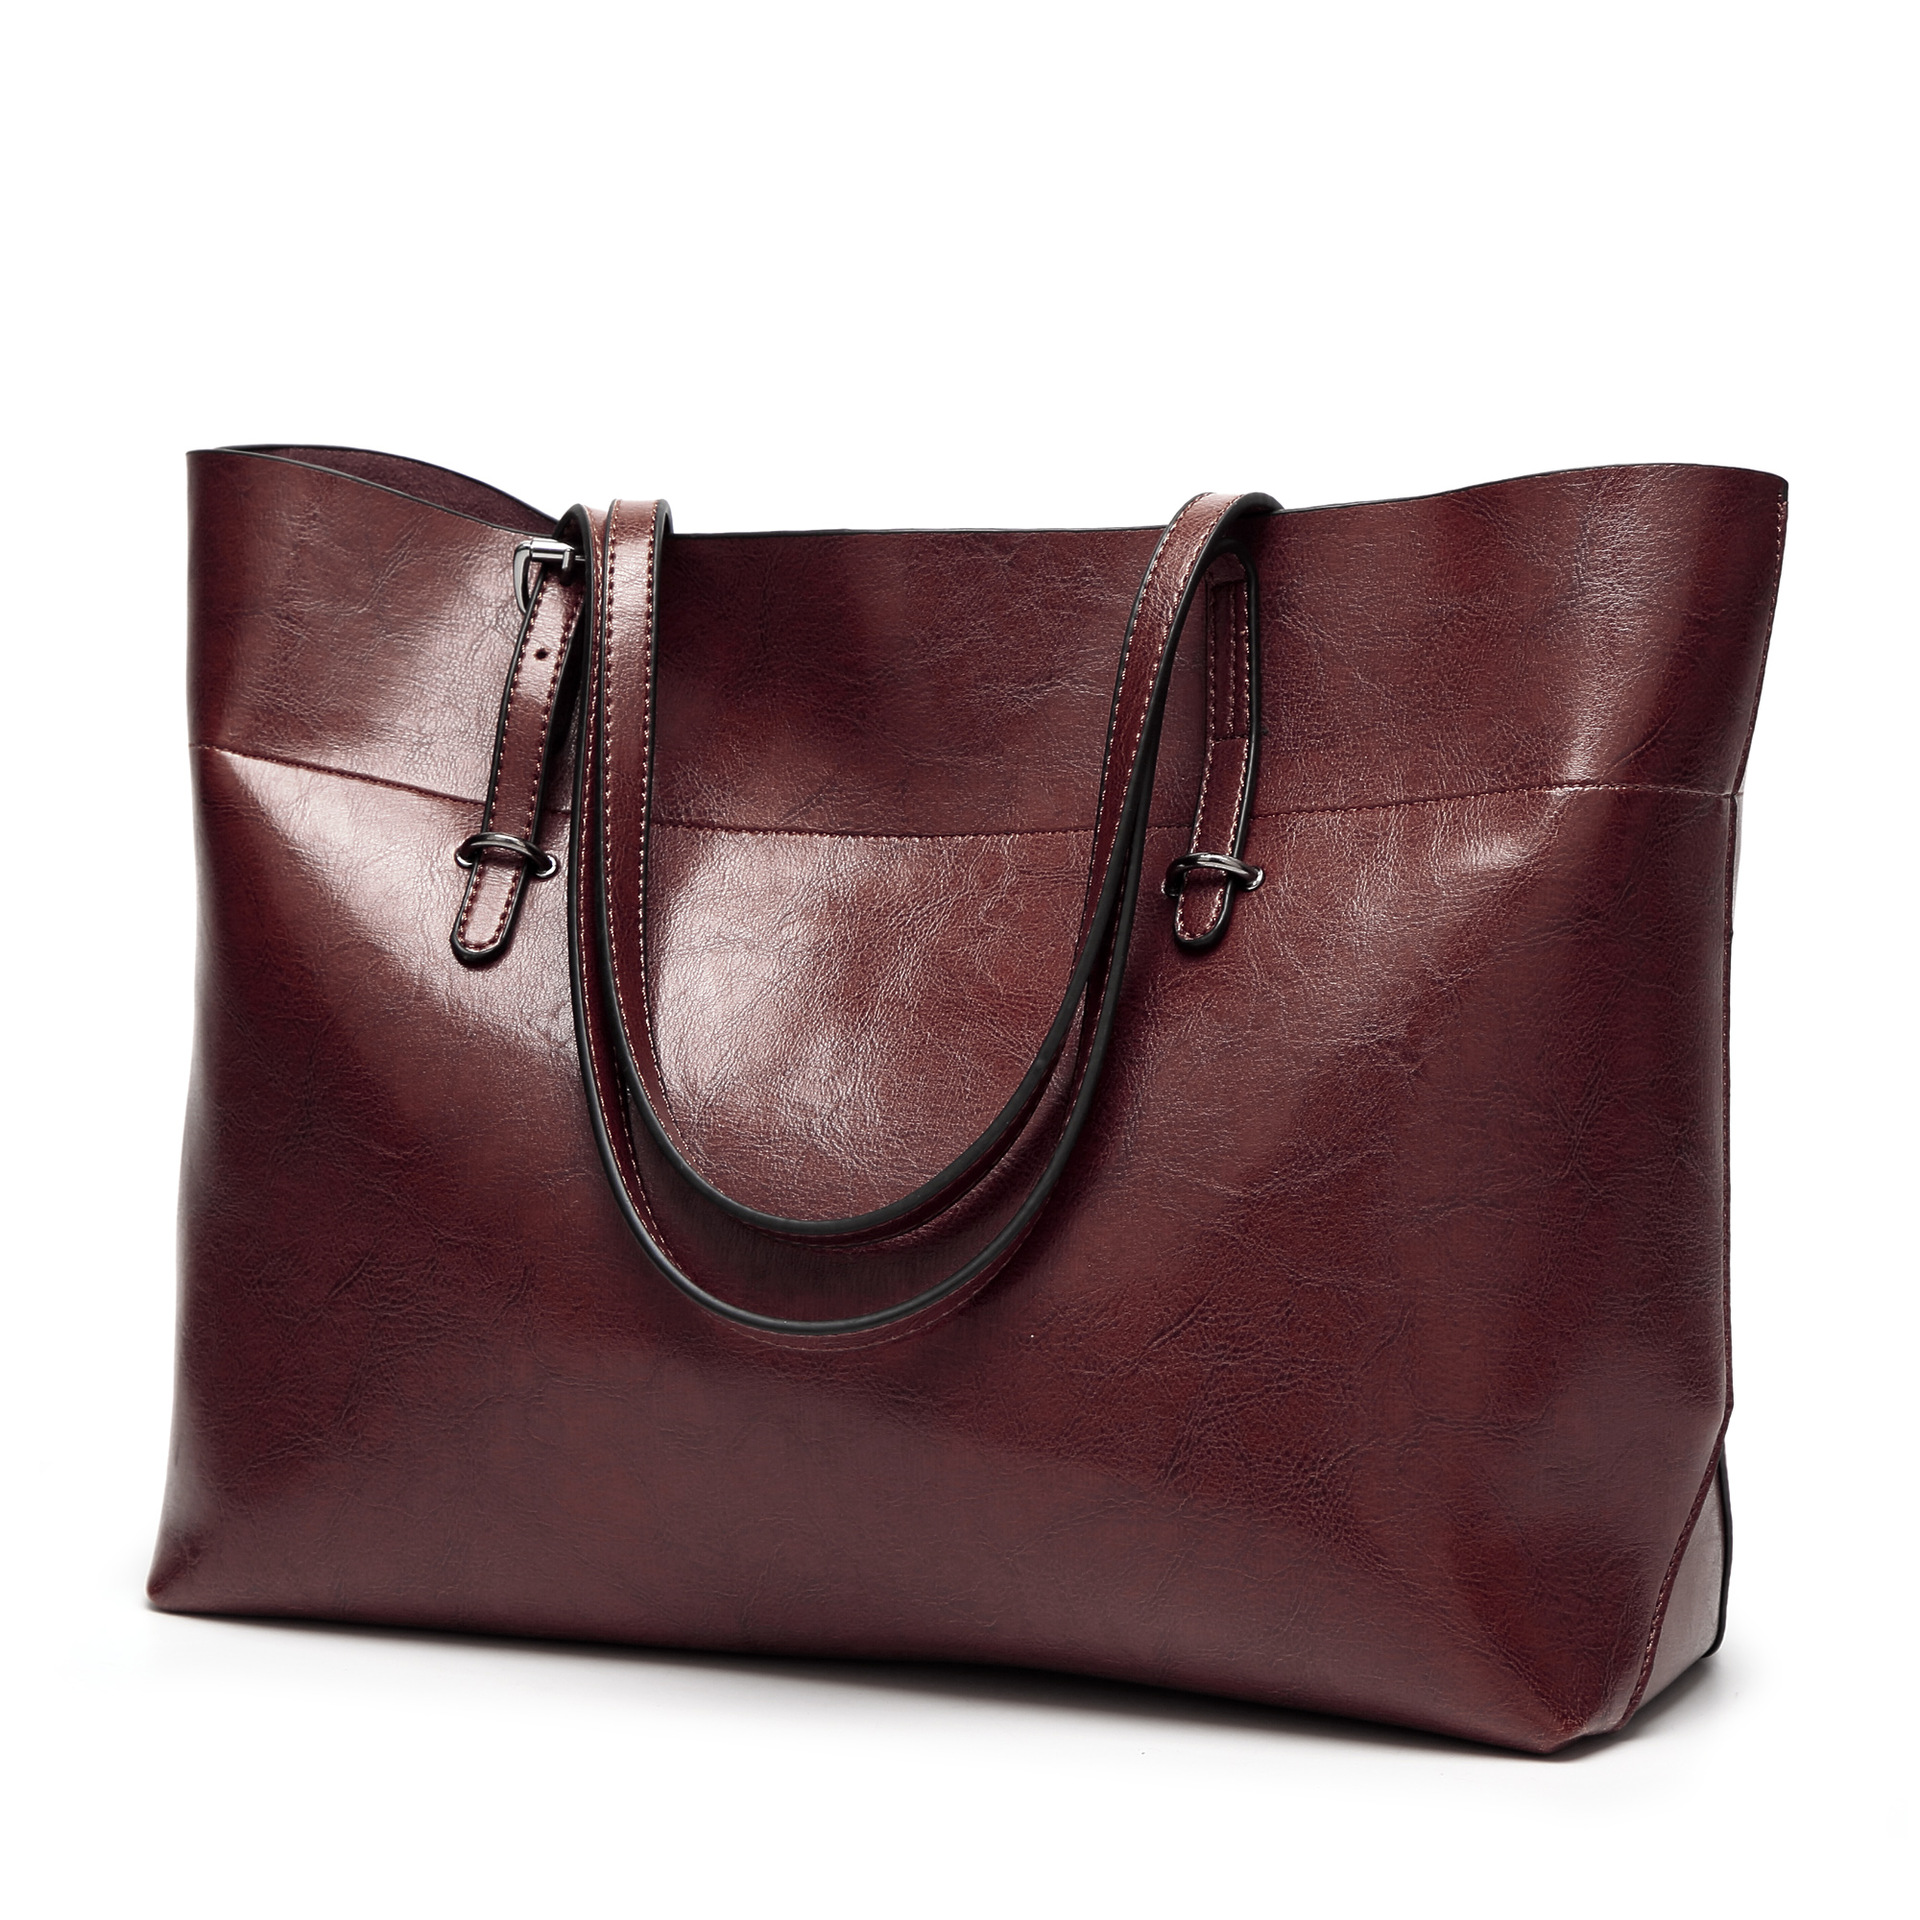 bc51059e181d FiveloveTwo Luxury Leather Women Handbags Outlet Female Oil Wax Skin Women  Satchel Tote Crossbody Shoulder Bags Large Purse